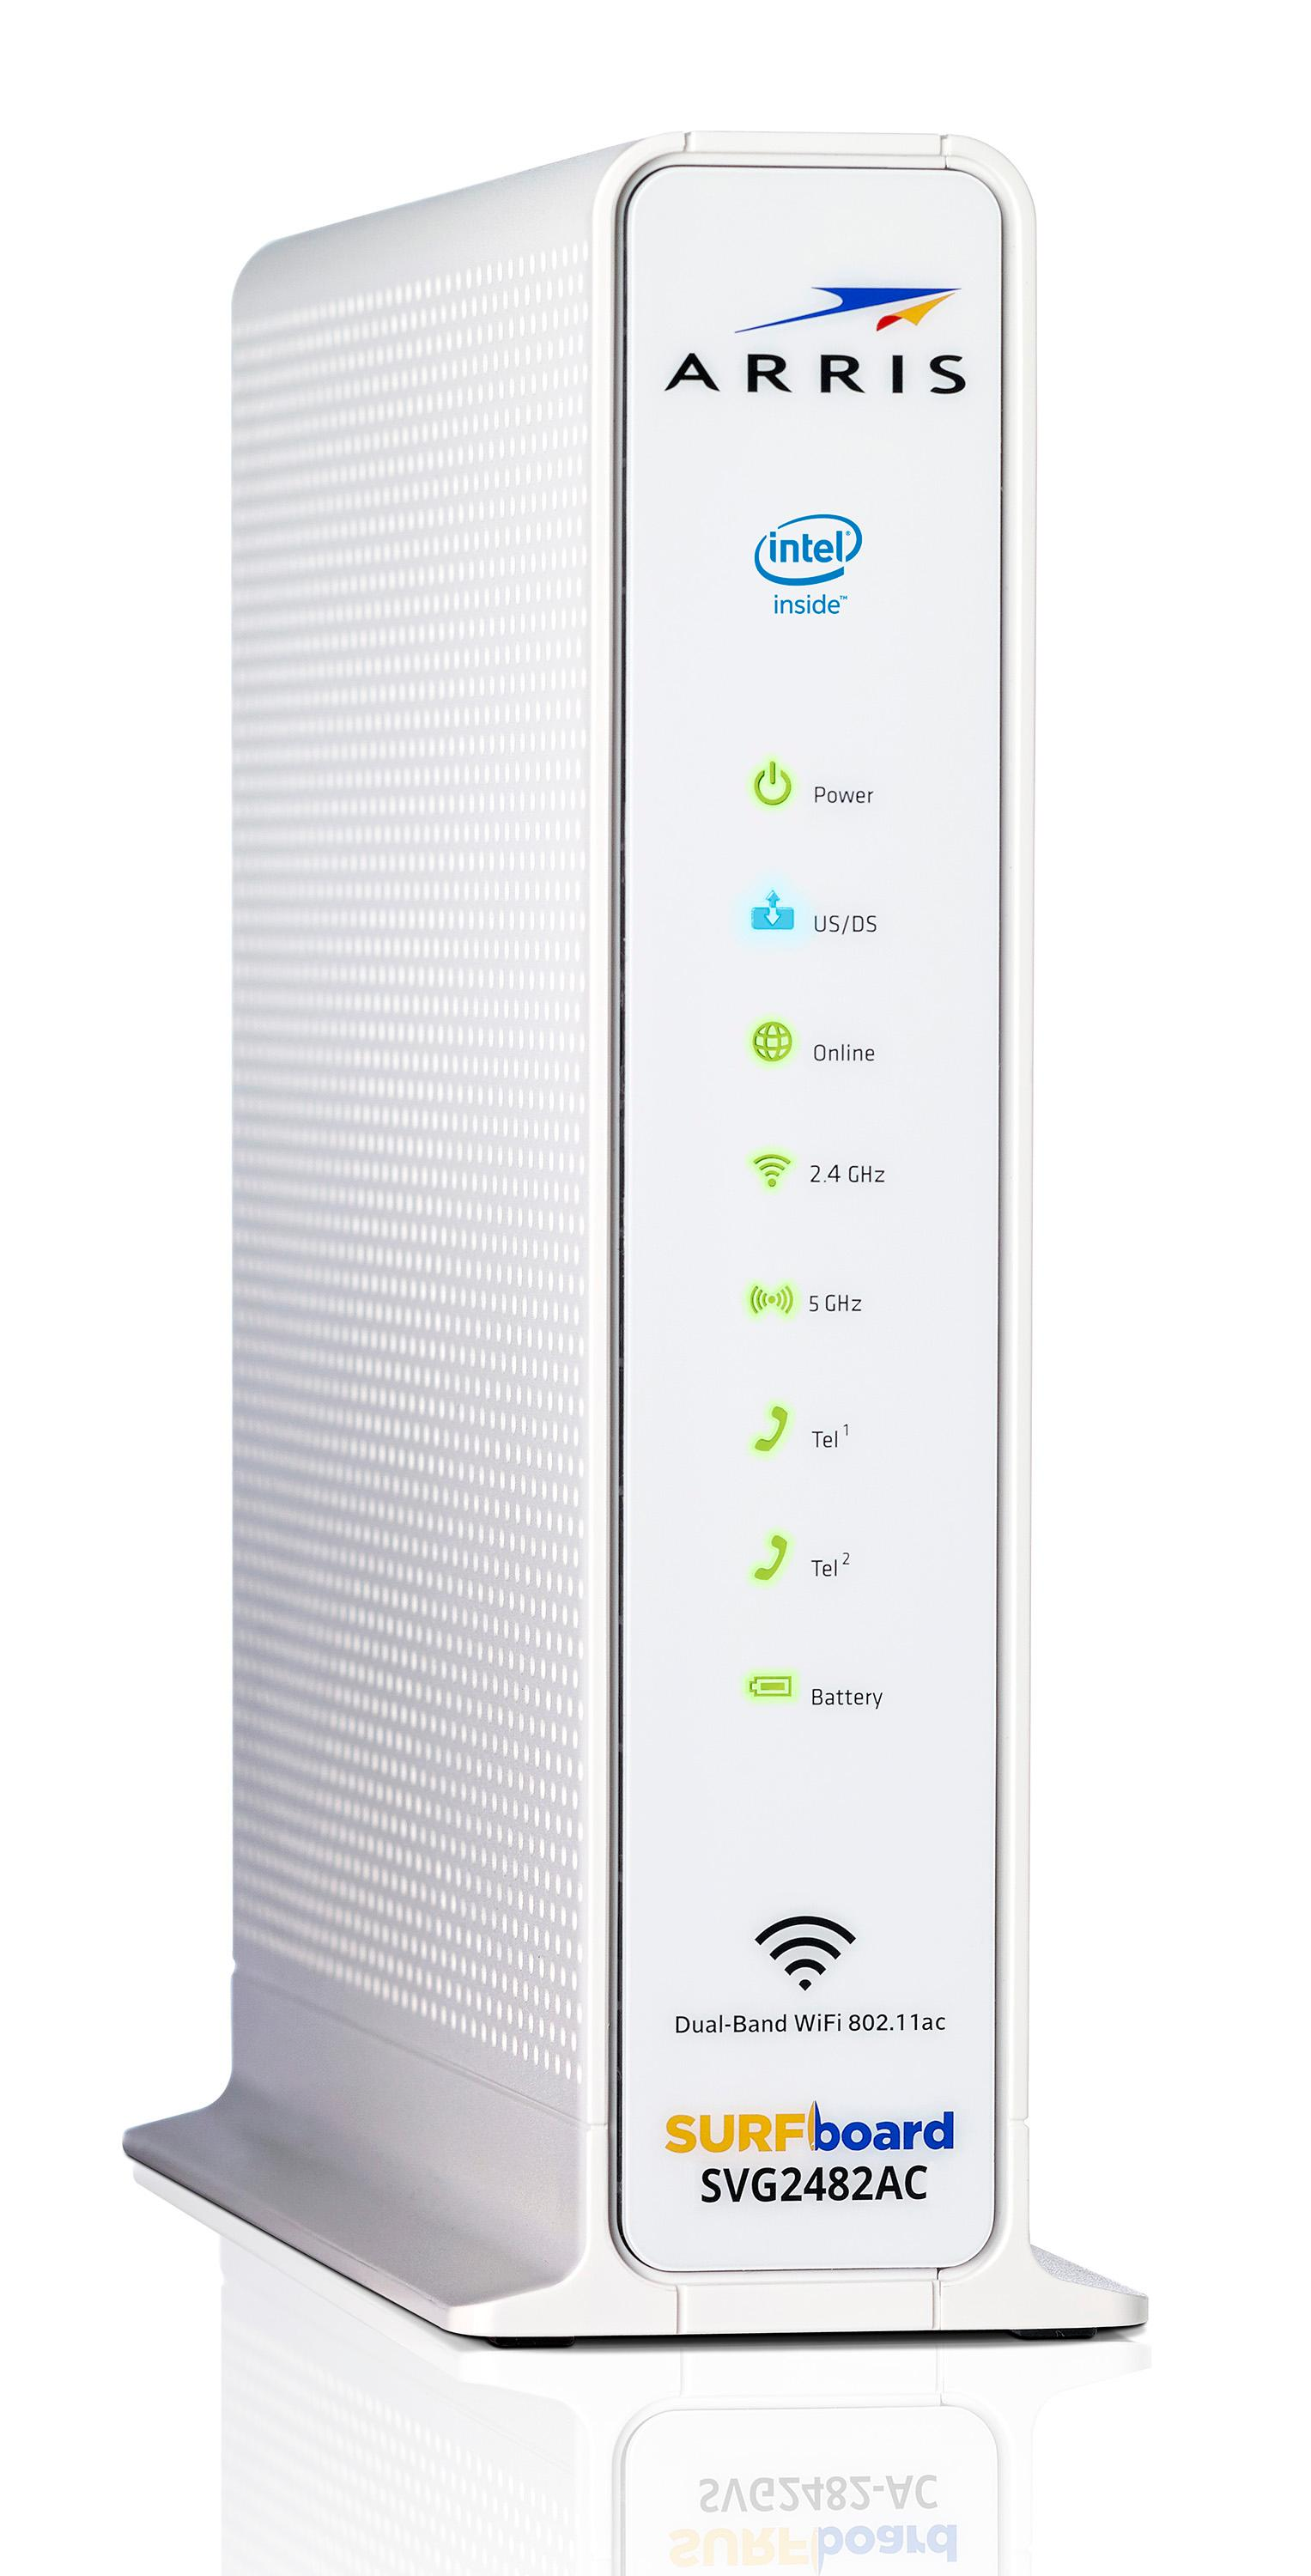 arris surfboard svg2482ac docsis 30 cable modem wifi router xfinity voice voip for xfinity. Black Bedroom Furniture Sets. Home Design Ideas